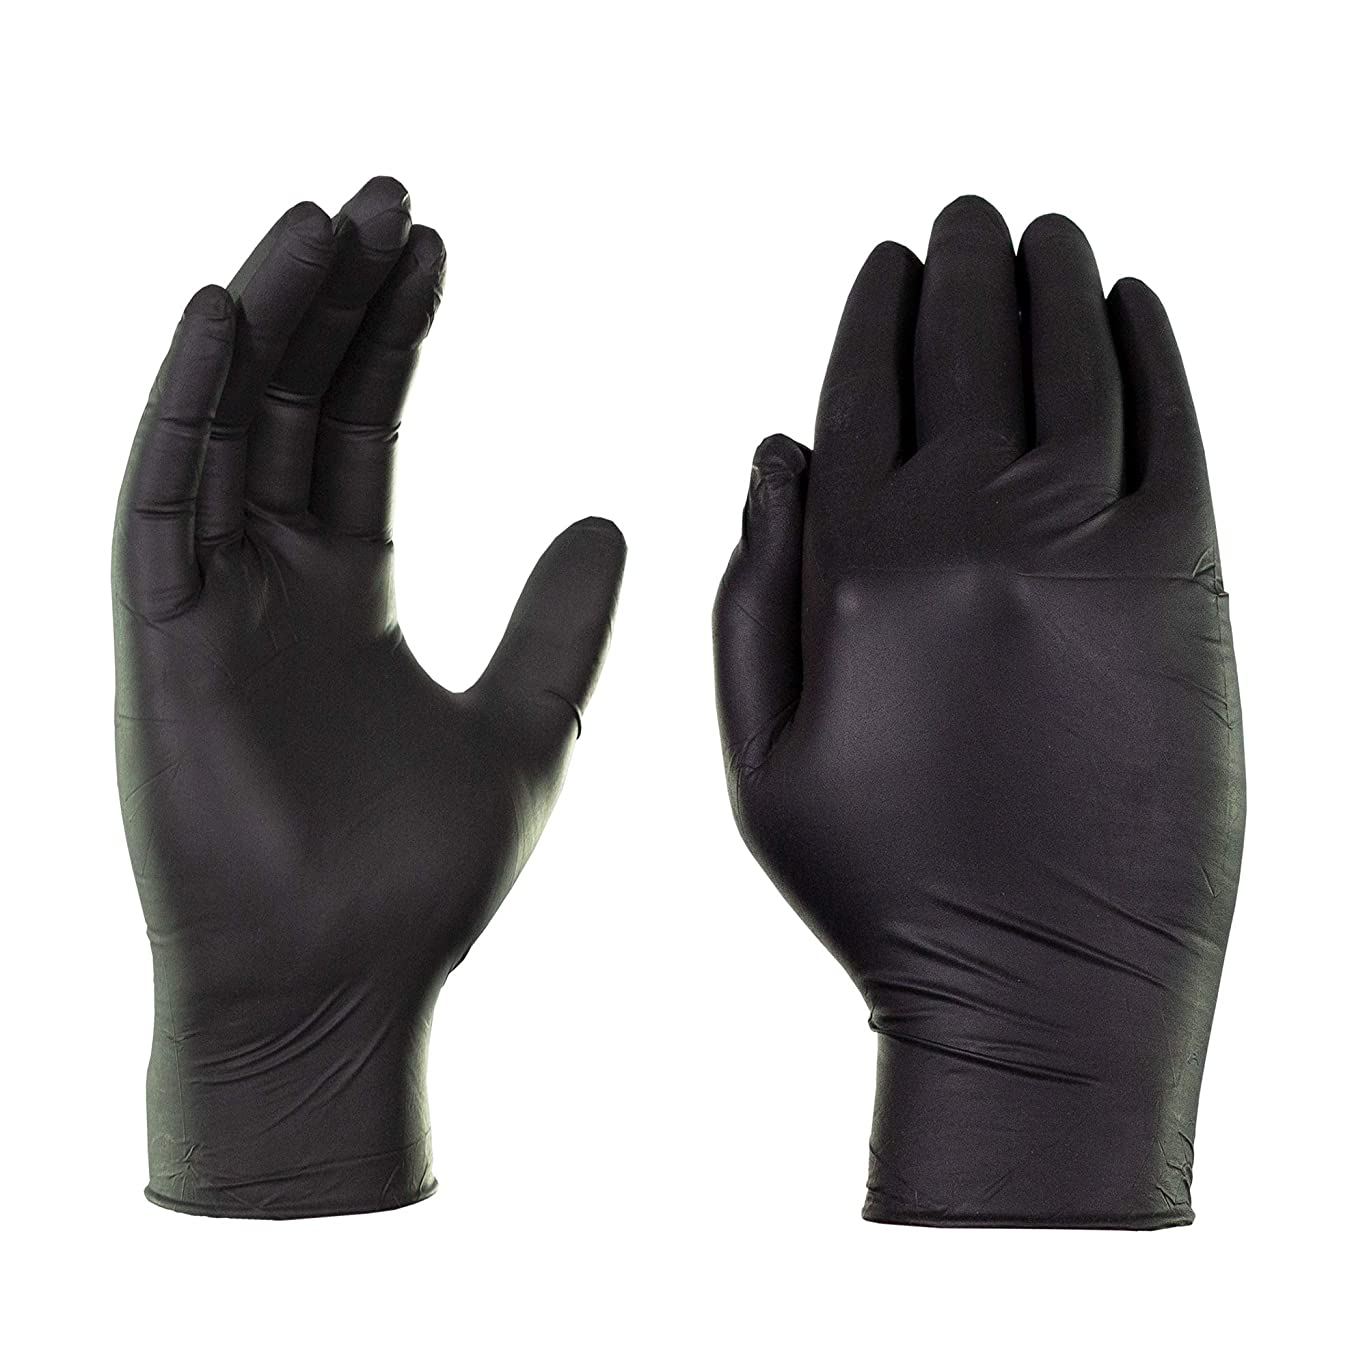 AMMEX - GPNB46100-BX - GlovePlus - Nitrile Disposable Gloves - Powder Free, Industrial, 5 mil, Large, Black (Box of 100)